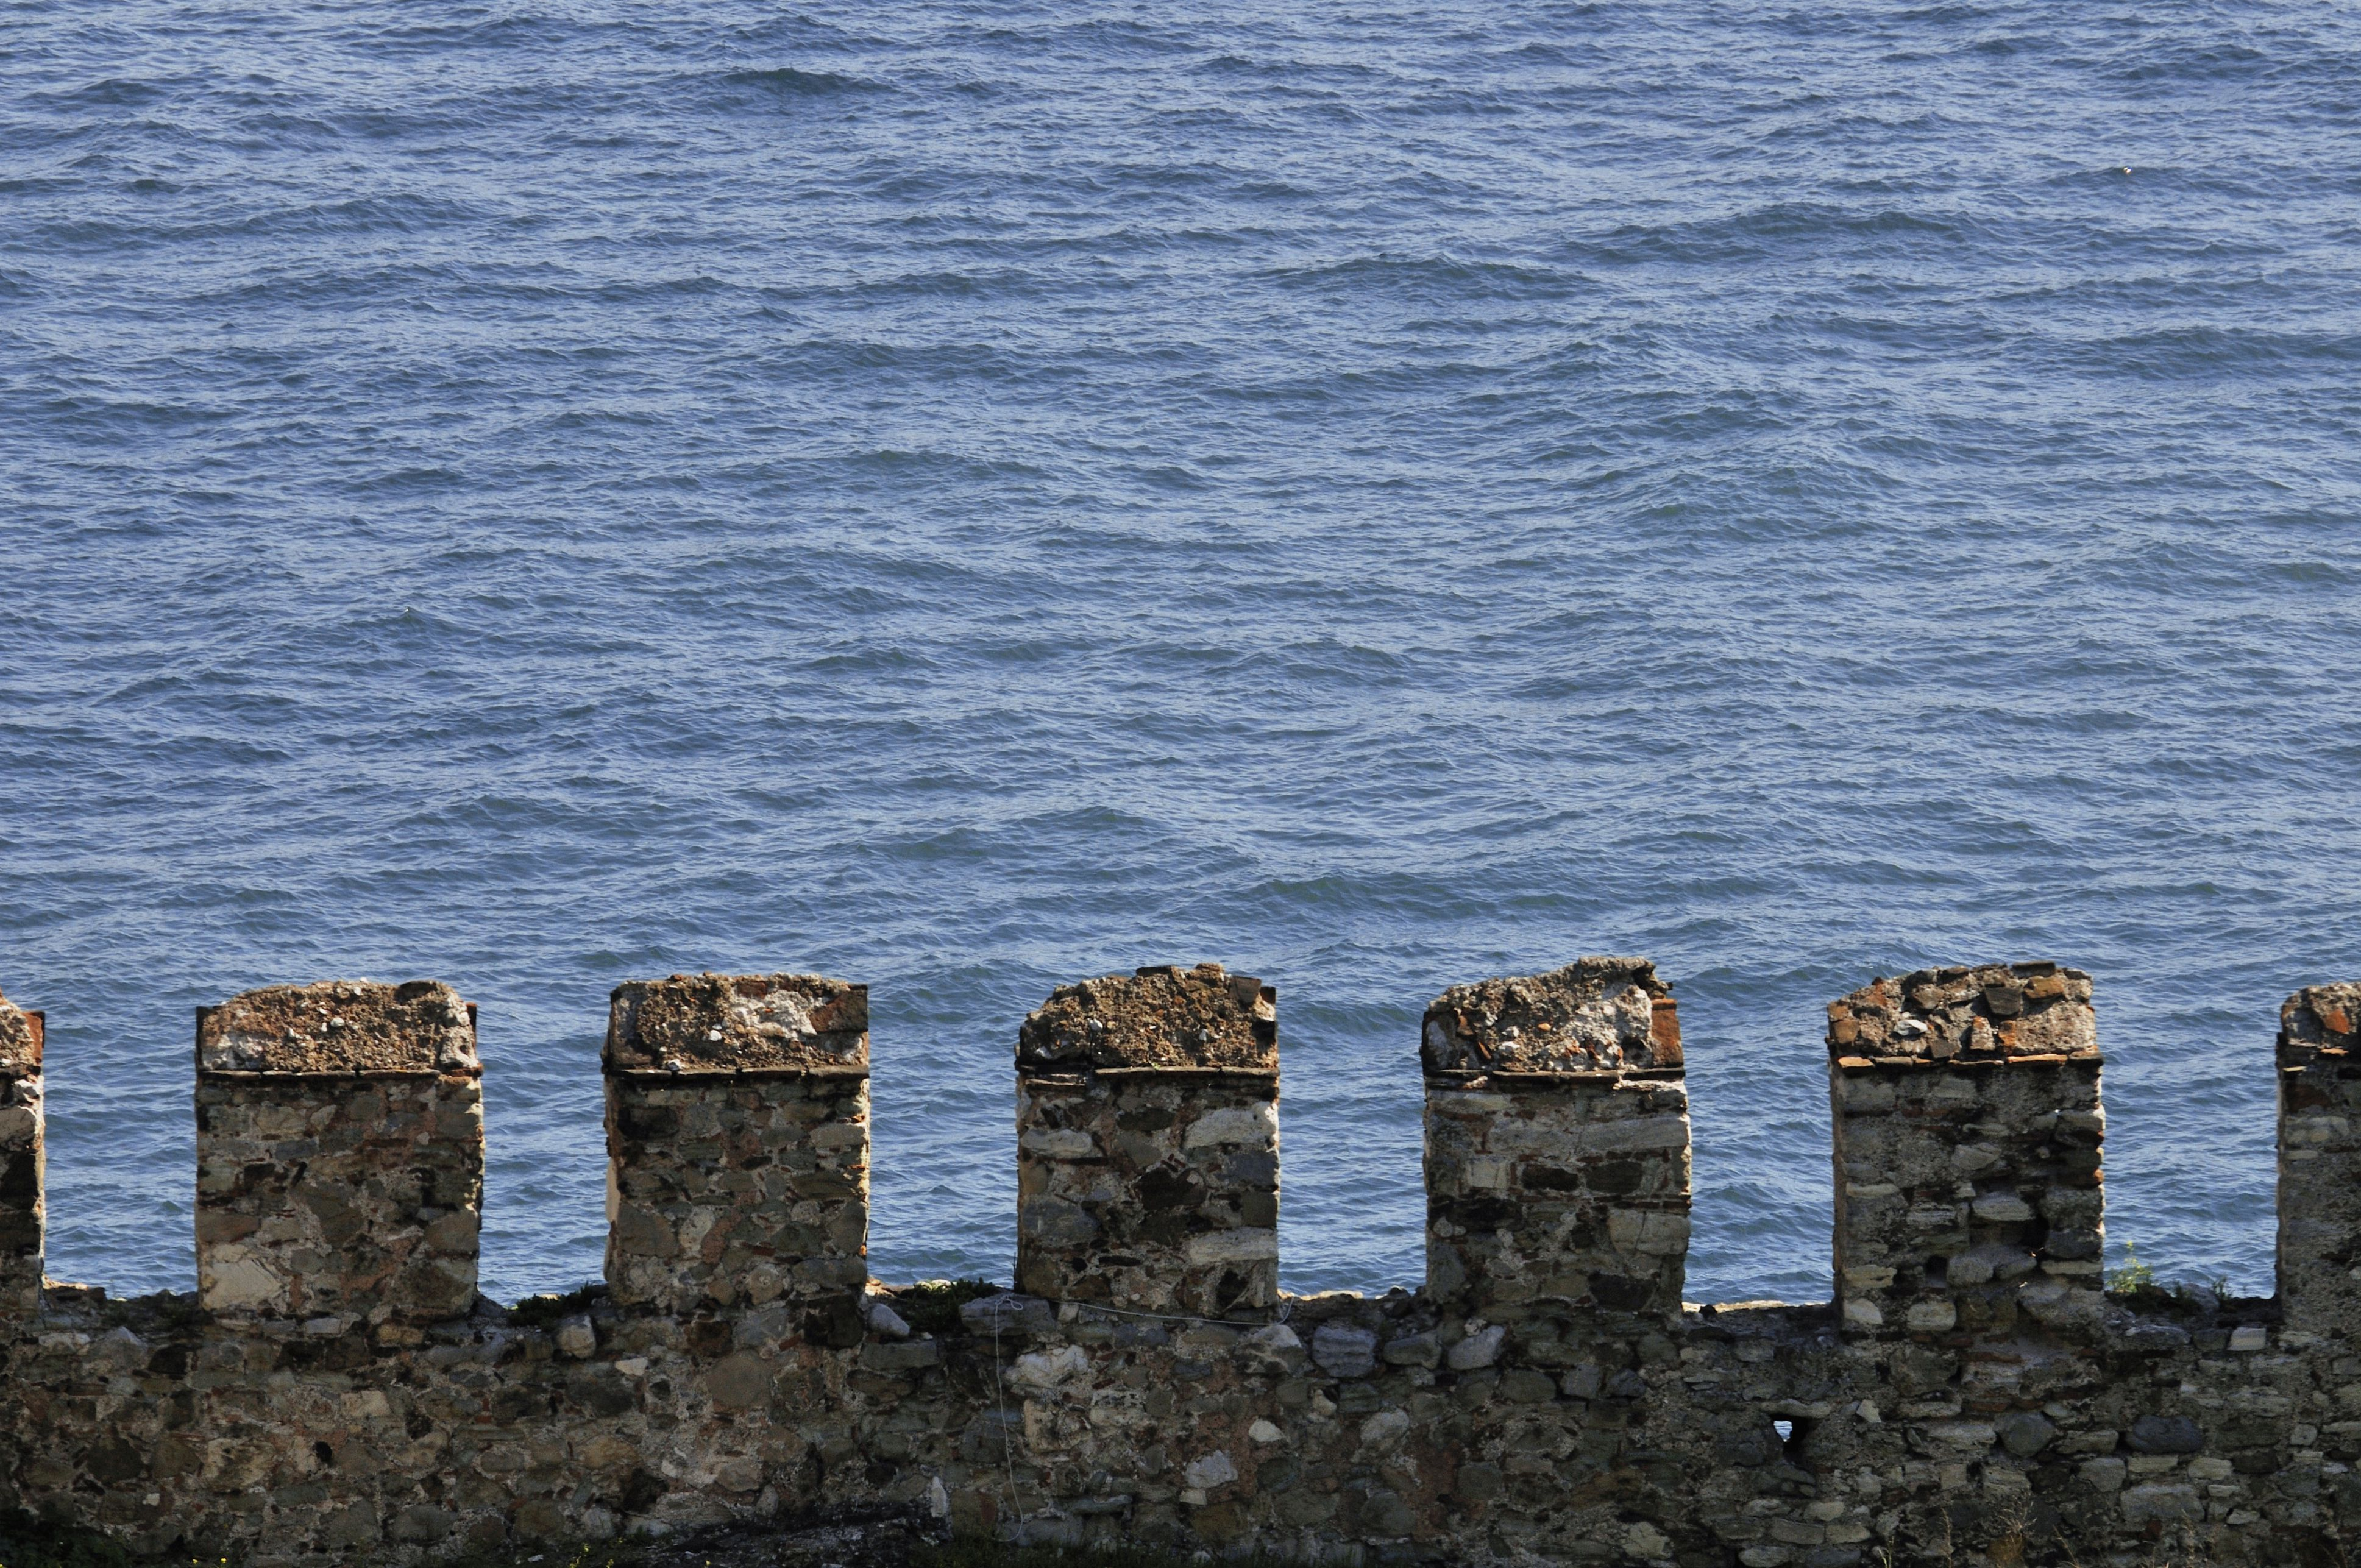 stone projections rising from a stone wall overlooking water